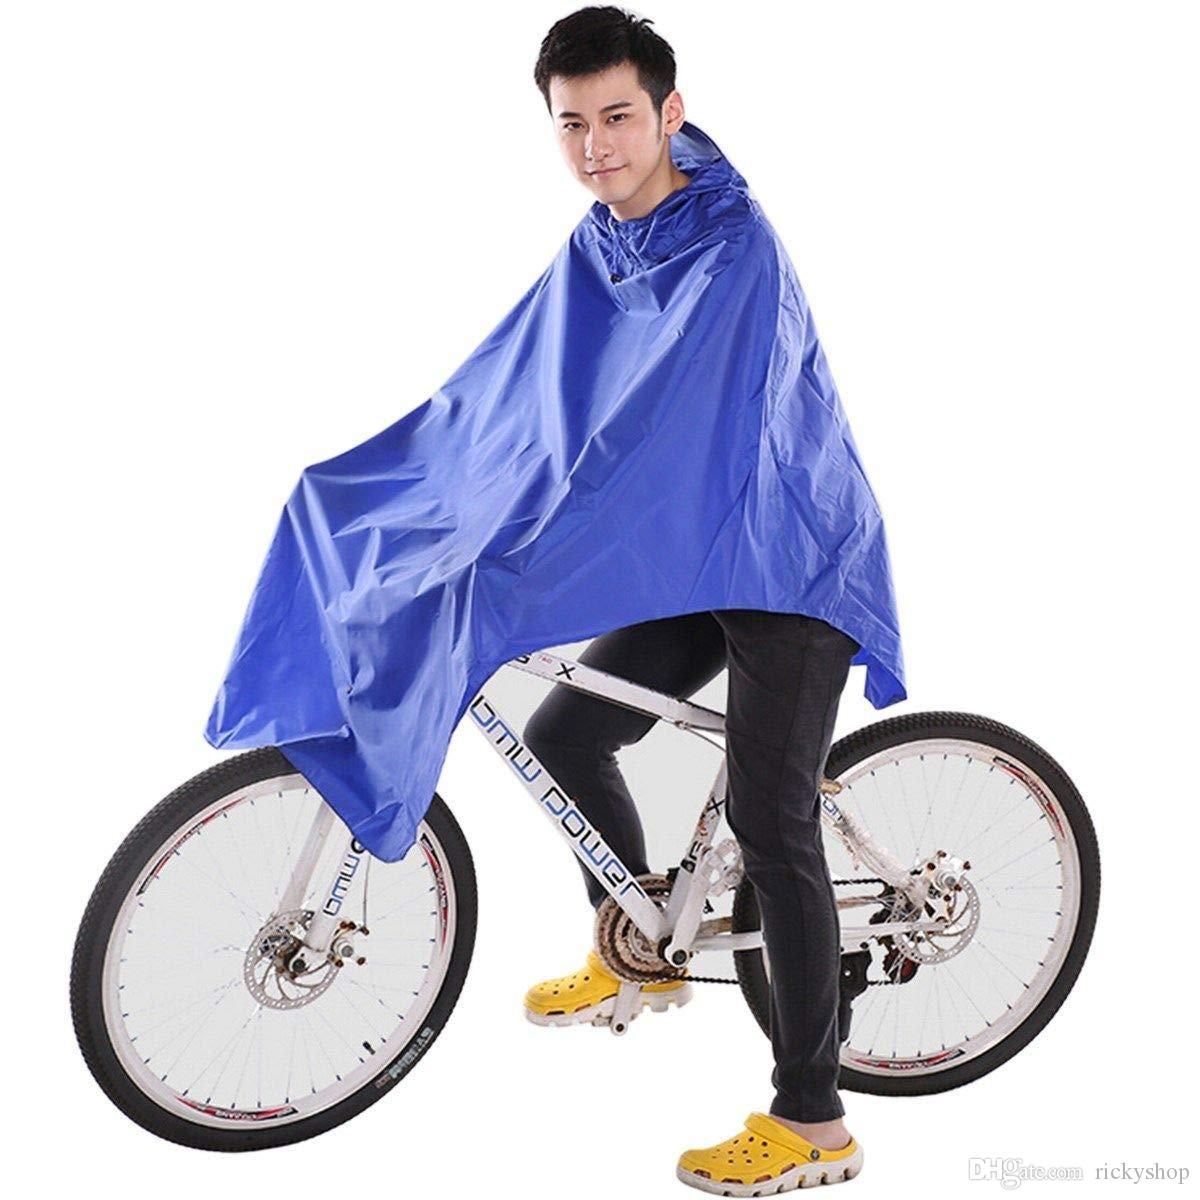 Ting Ao Cycling Bicycle Bike Raincoat Rain Cape Poncho Cloth Gear Rainproof Blue Comfort